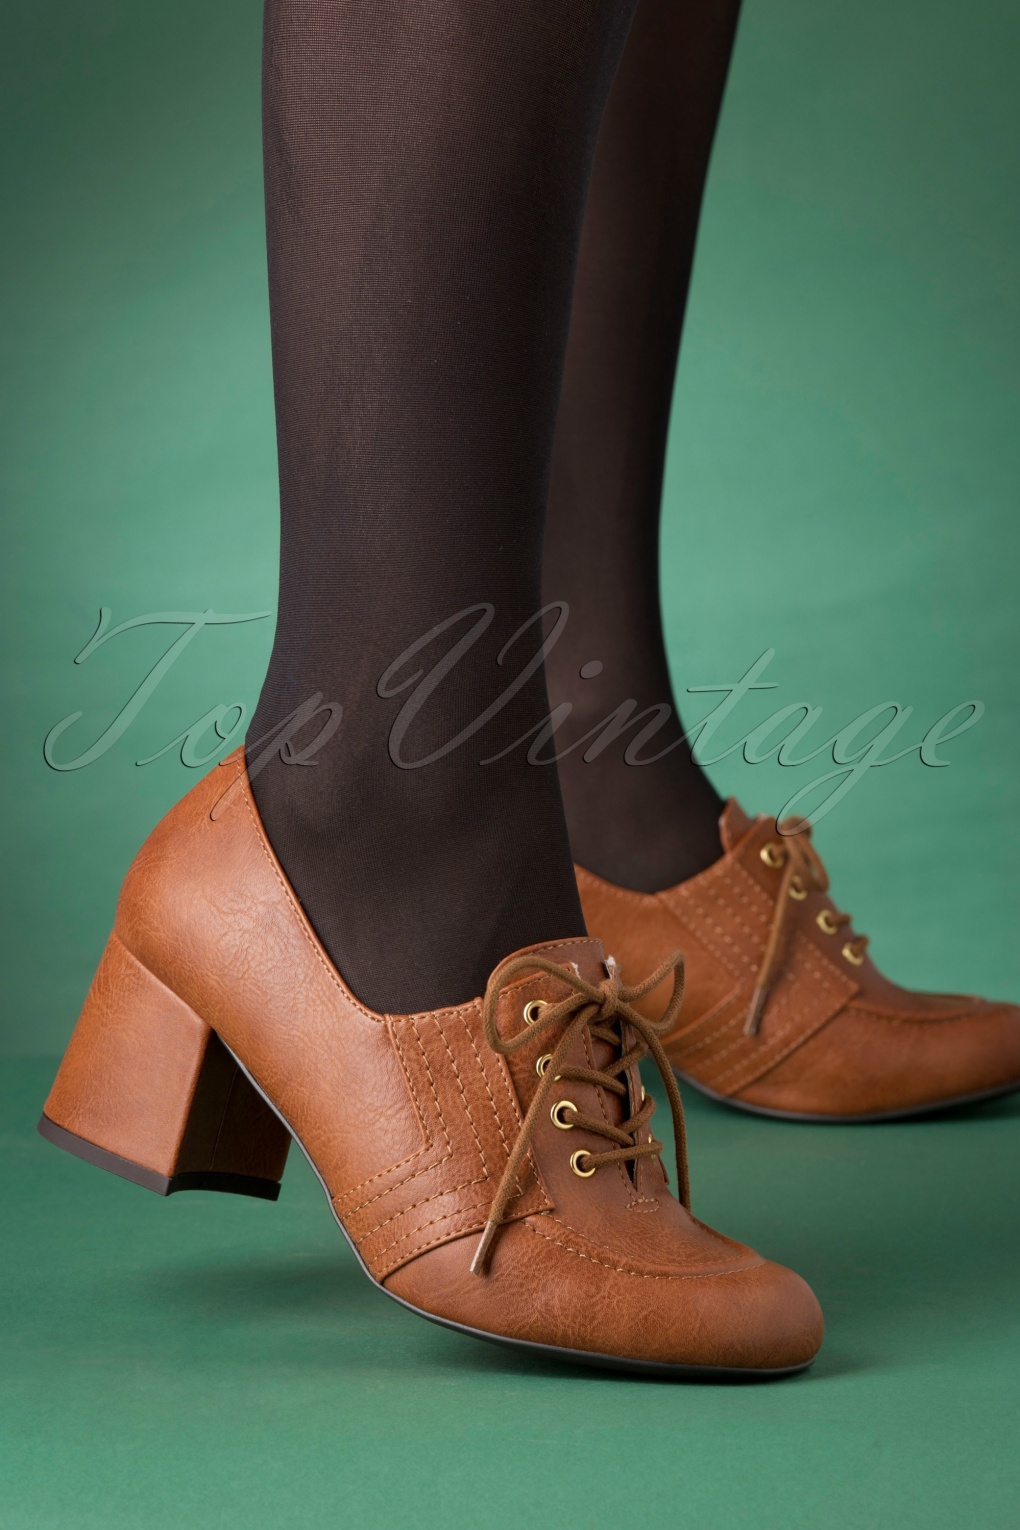 60s Shoes, Boots | 70s Shoes, Platforms, Boots 60s Cider Lace Up Brogues in Tan £68.42 AT vintagedancer.com